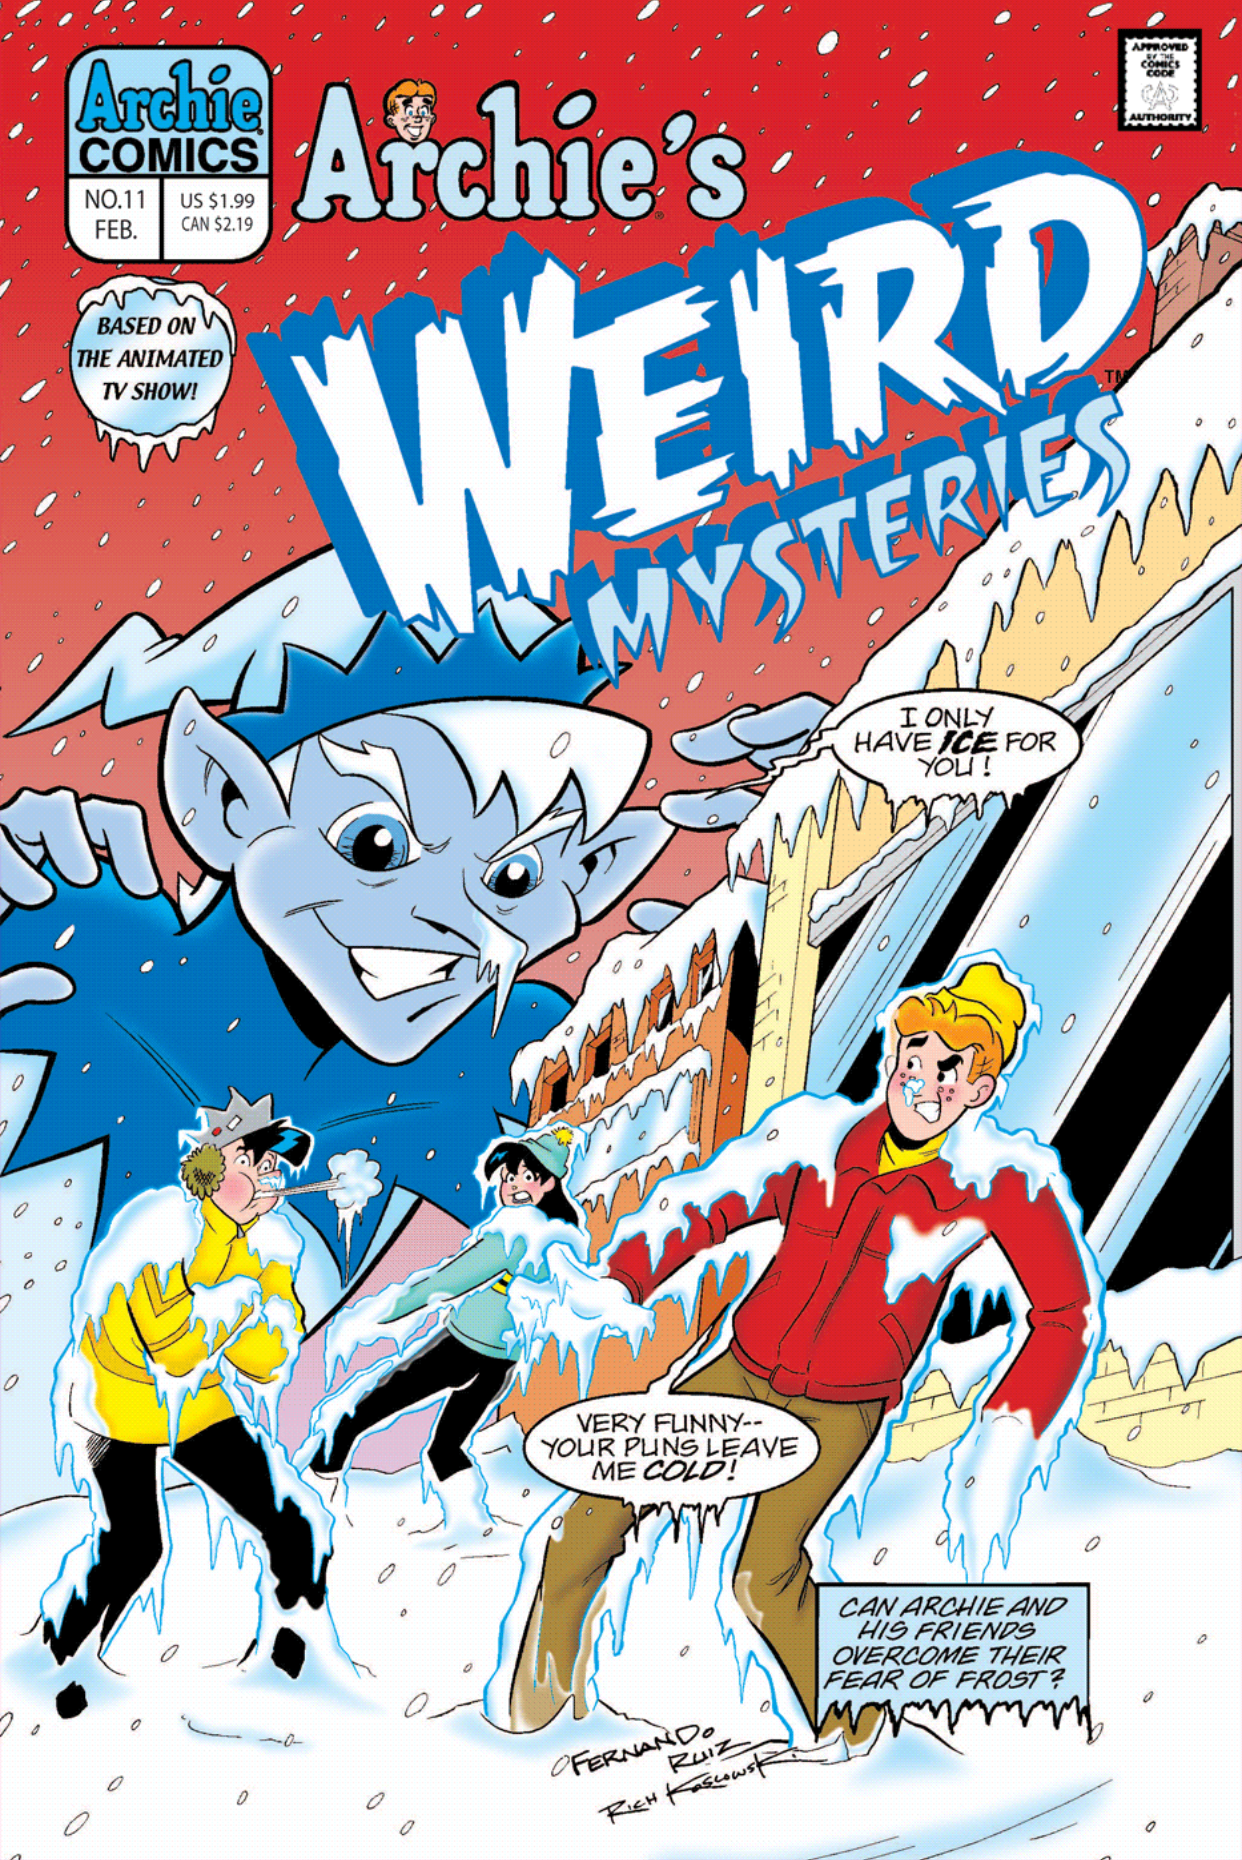 Read online Archie's Weird Mysteries comic -  Issue #11 - 1